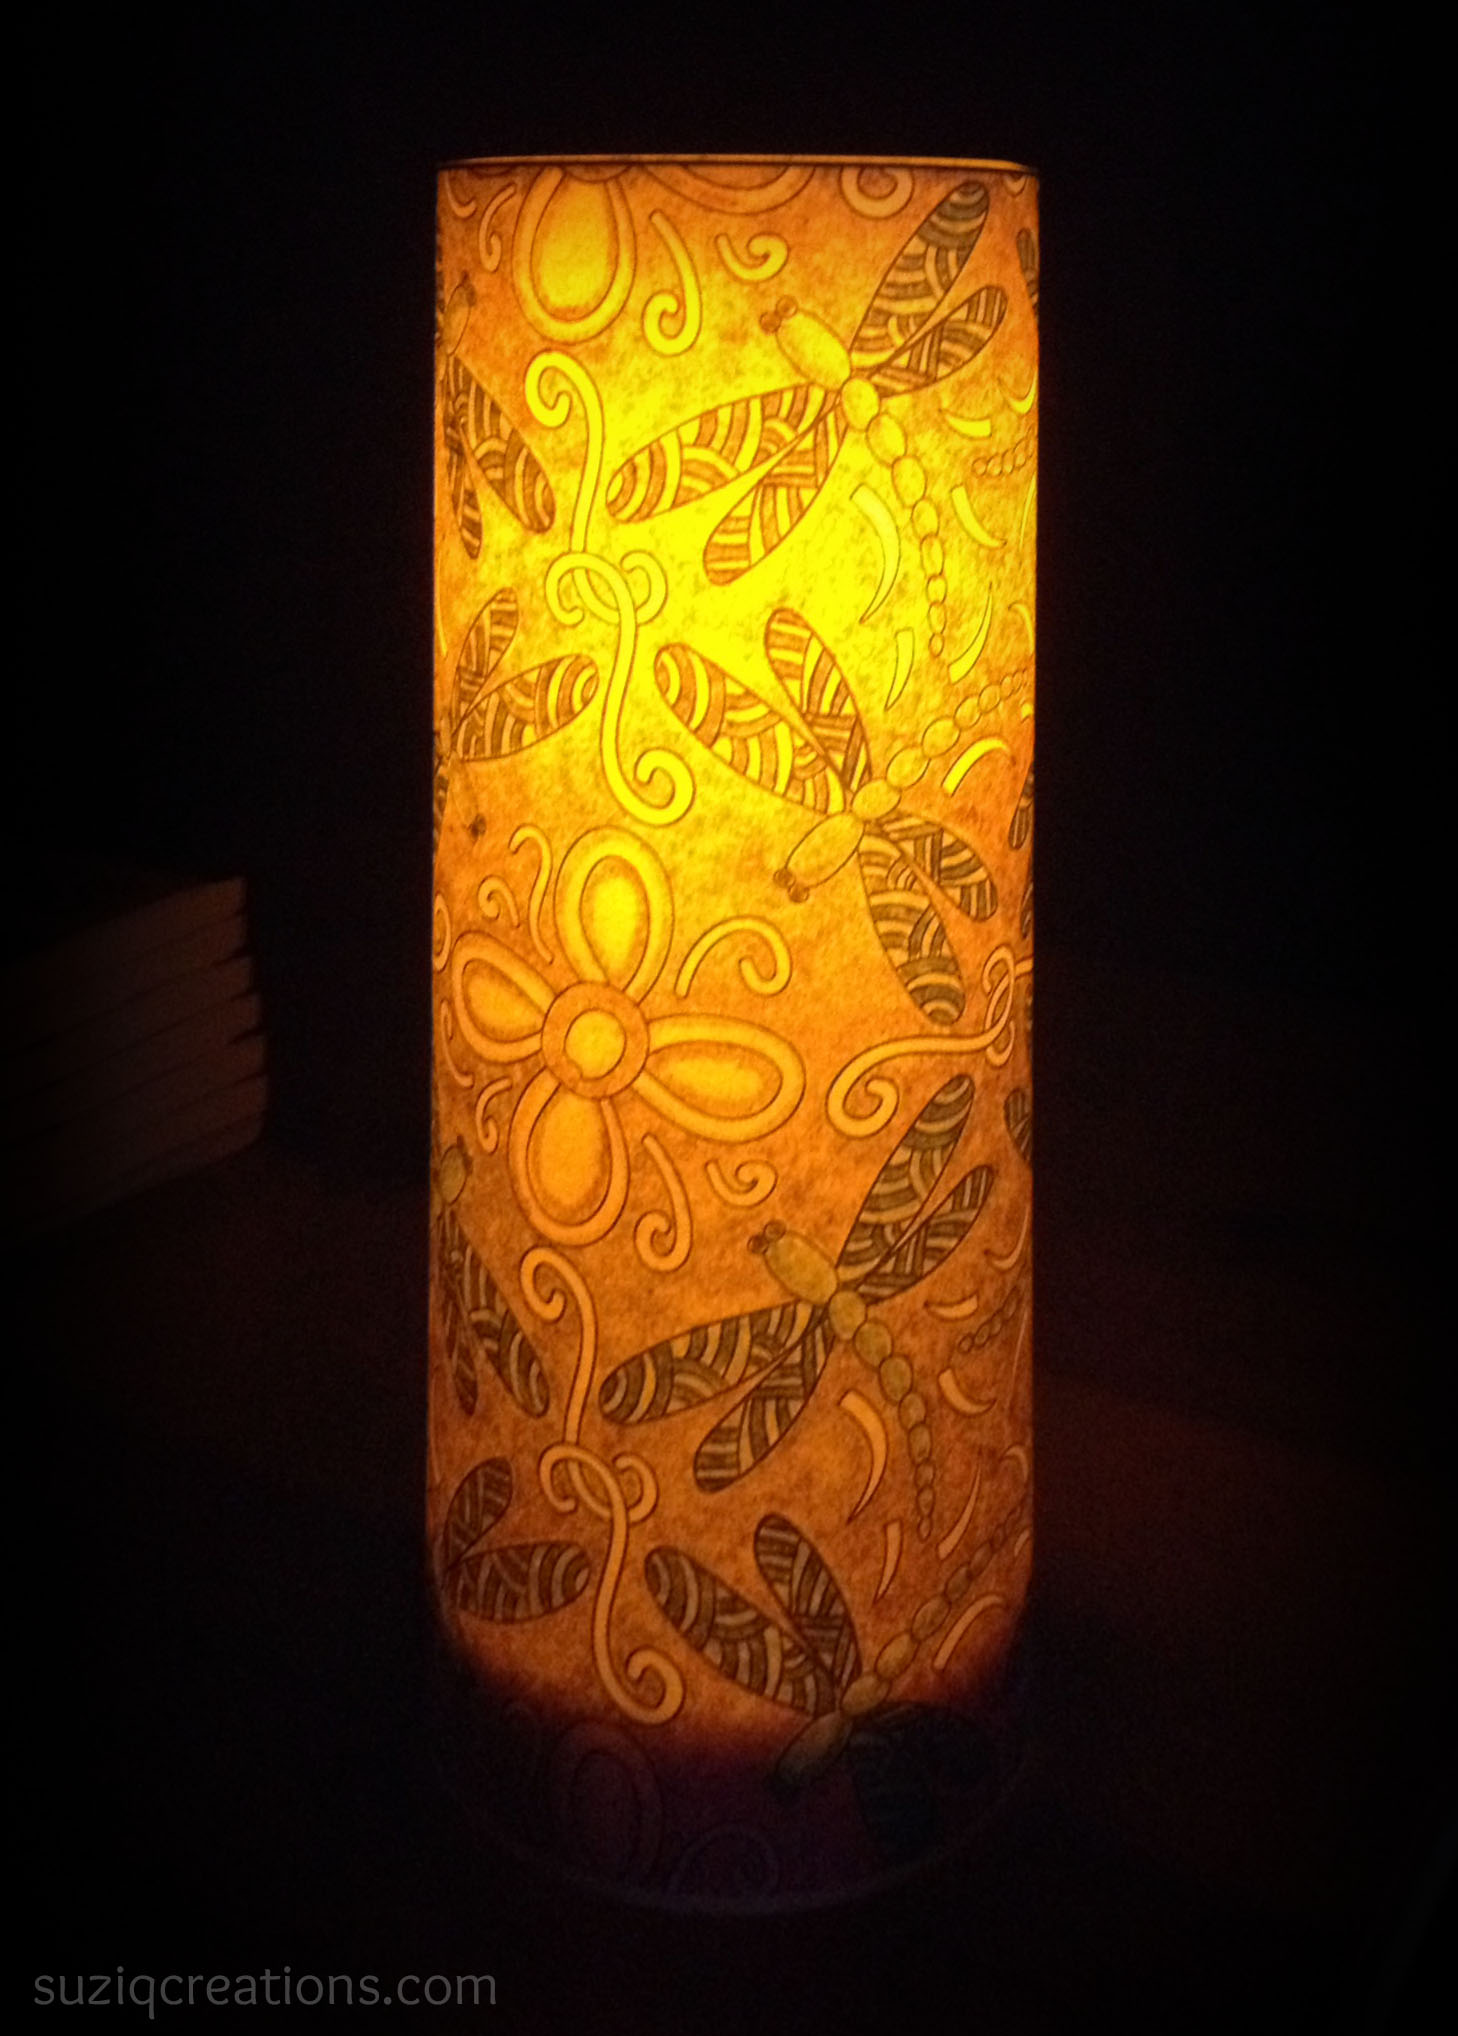 Coloring Christmas Lights With Sharpie Illuminate Your Pages Craft Project SuziQ Creations